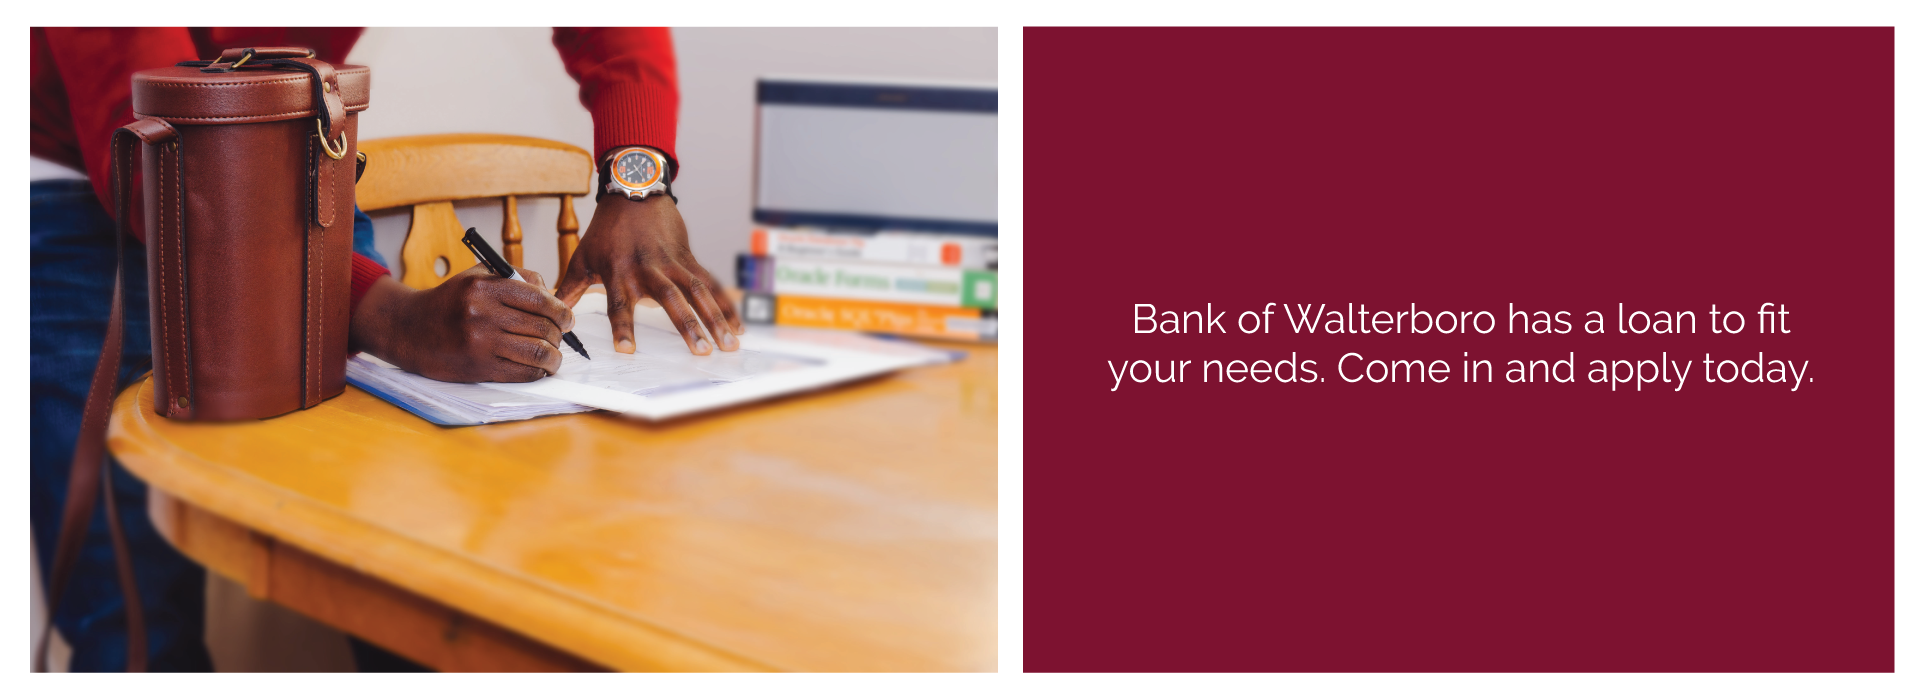 Bank-of-Walterboro-Loans